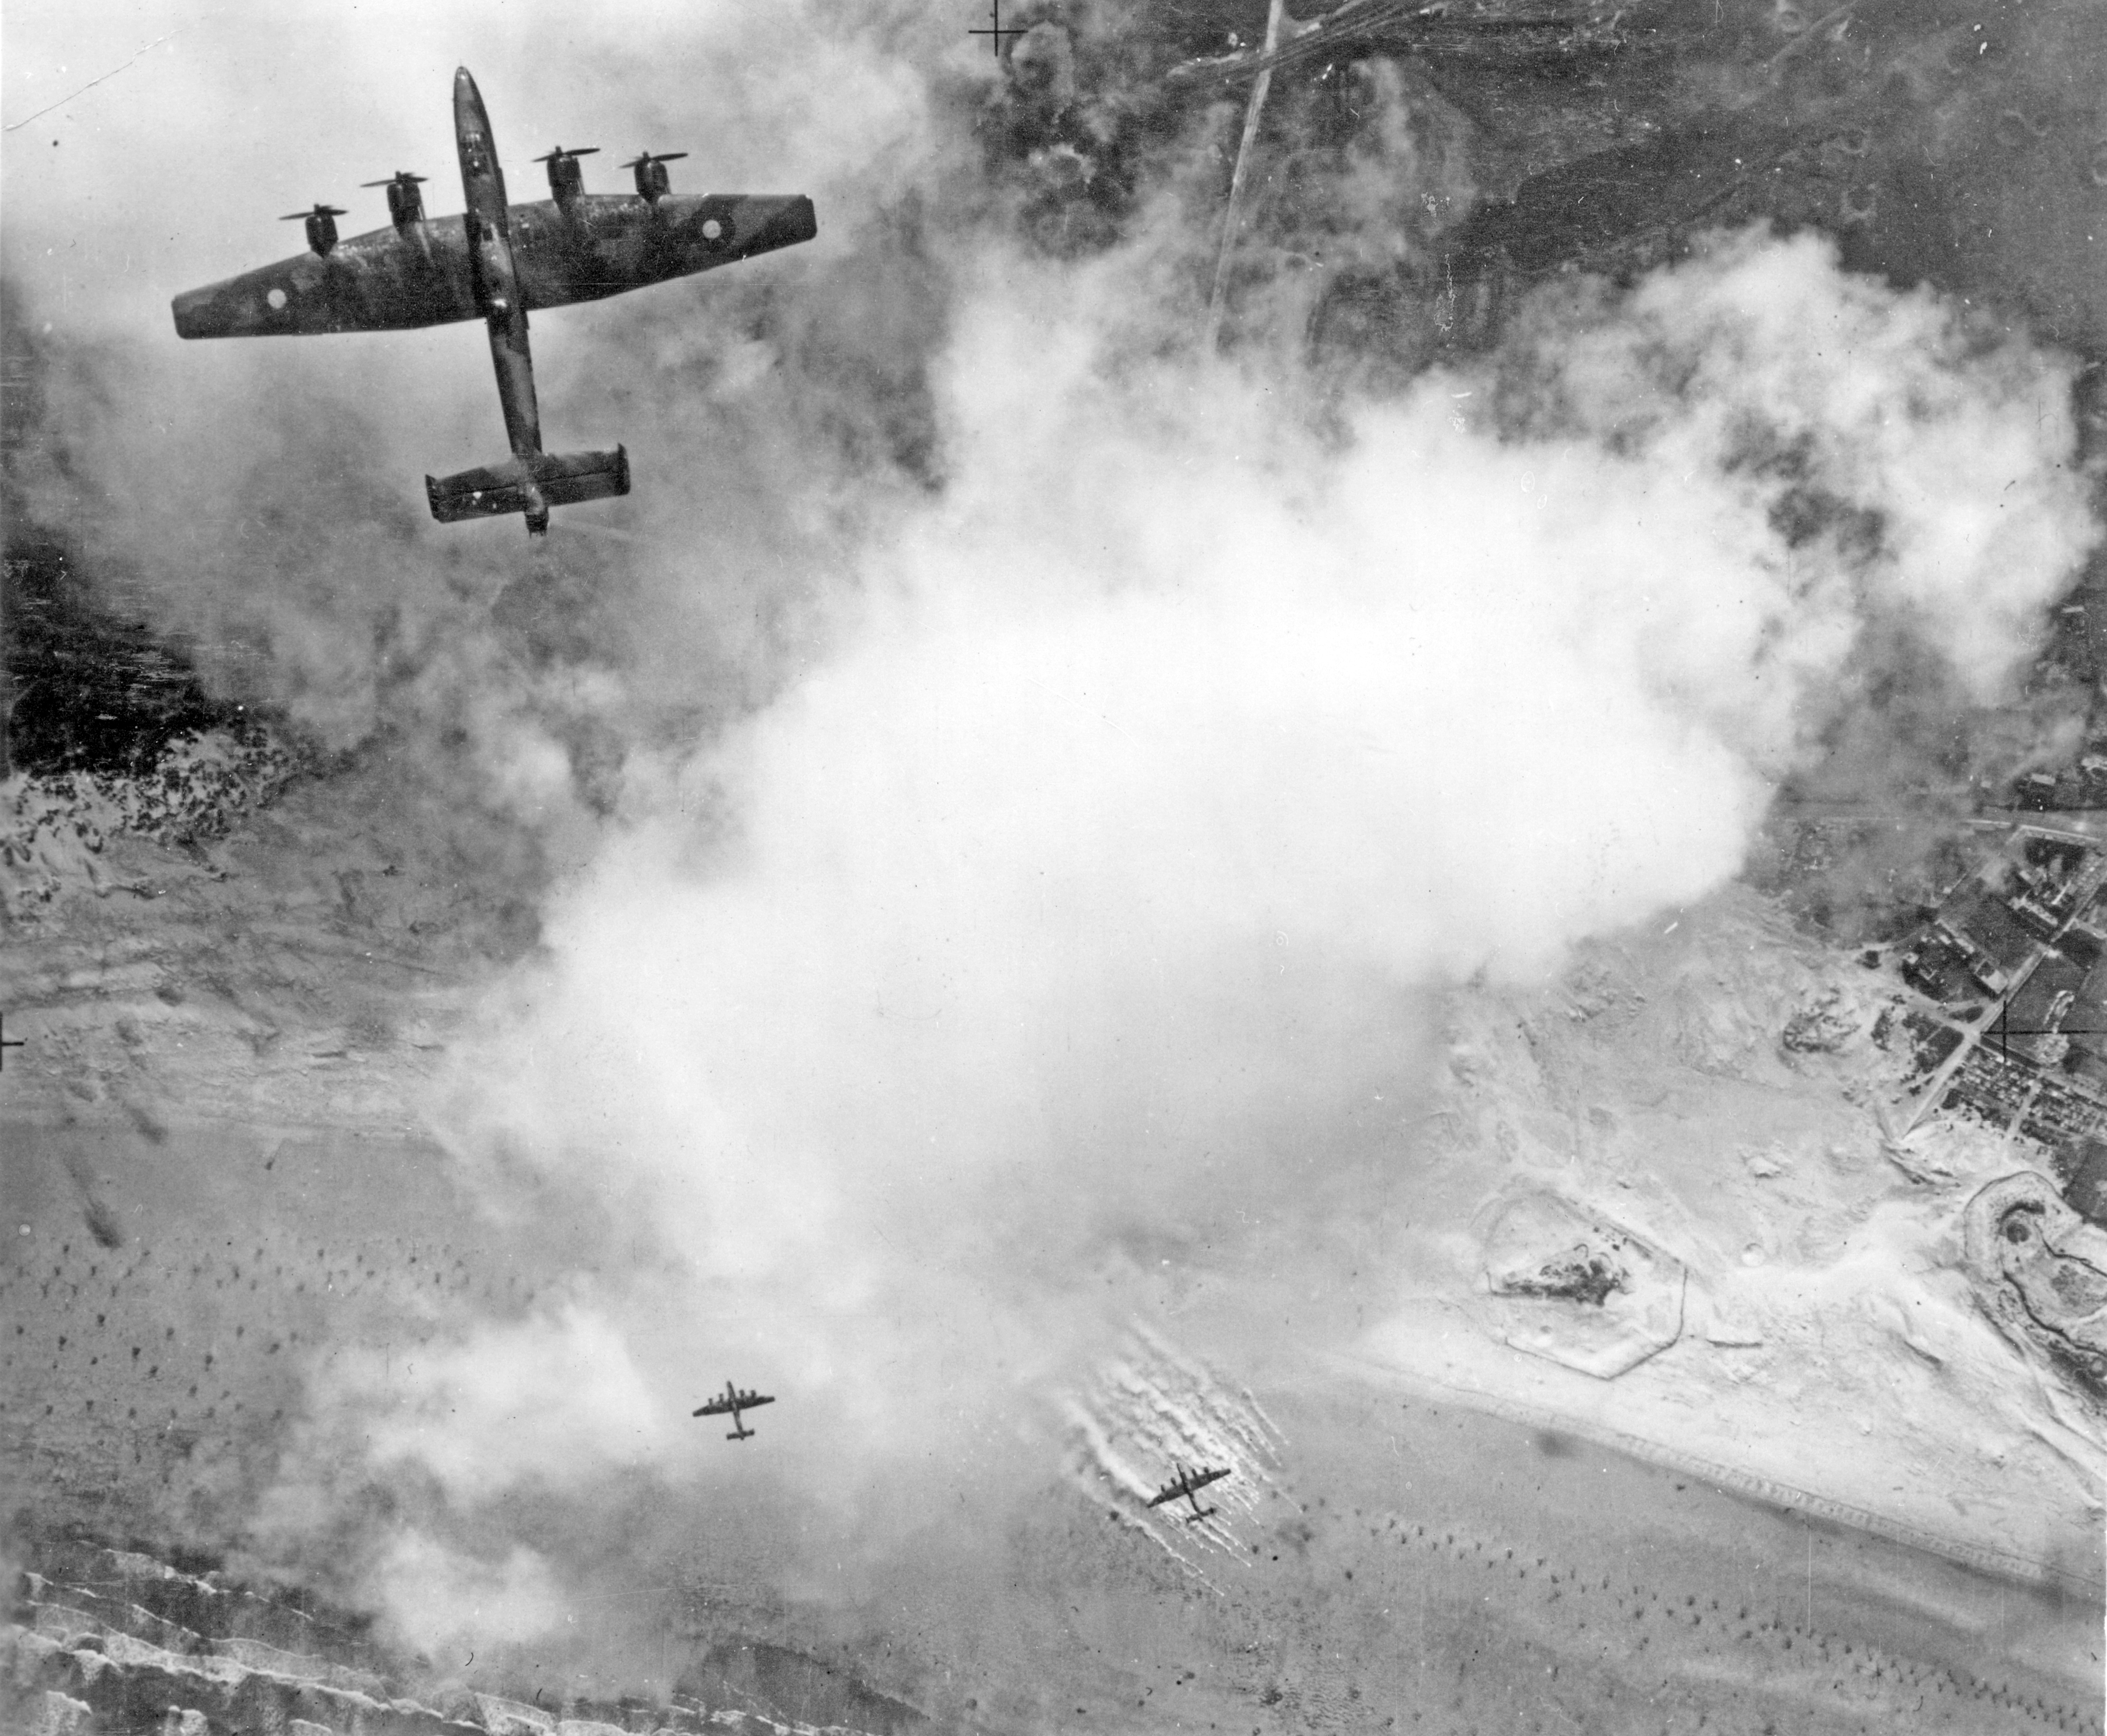 Aerial reconnaissance photograph taken during a daylight raid by 872 aircraft on German defensive positions around Calais, France, on 25 September 1944. Three Handley Page Halifaxes, photographed from an Avro Lancaster, can be seen over the target area, a coastal battery, which is obscured by low cloud. The scattered candles of a Target Indicator can be seen smoking on the beach, which is itself covered in landing obstacles.